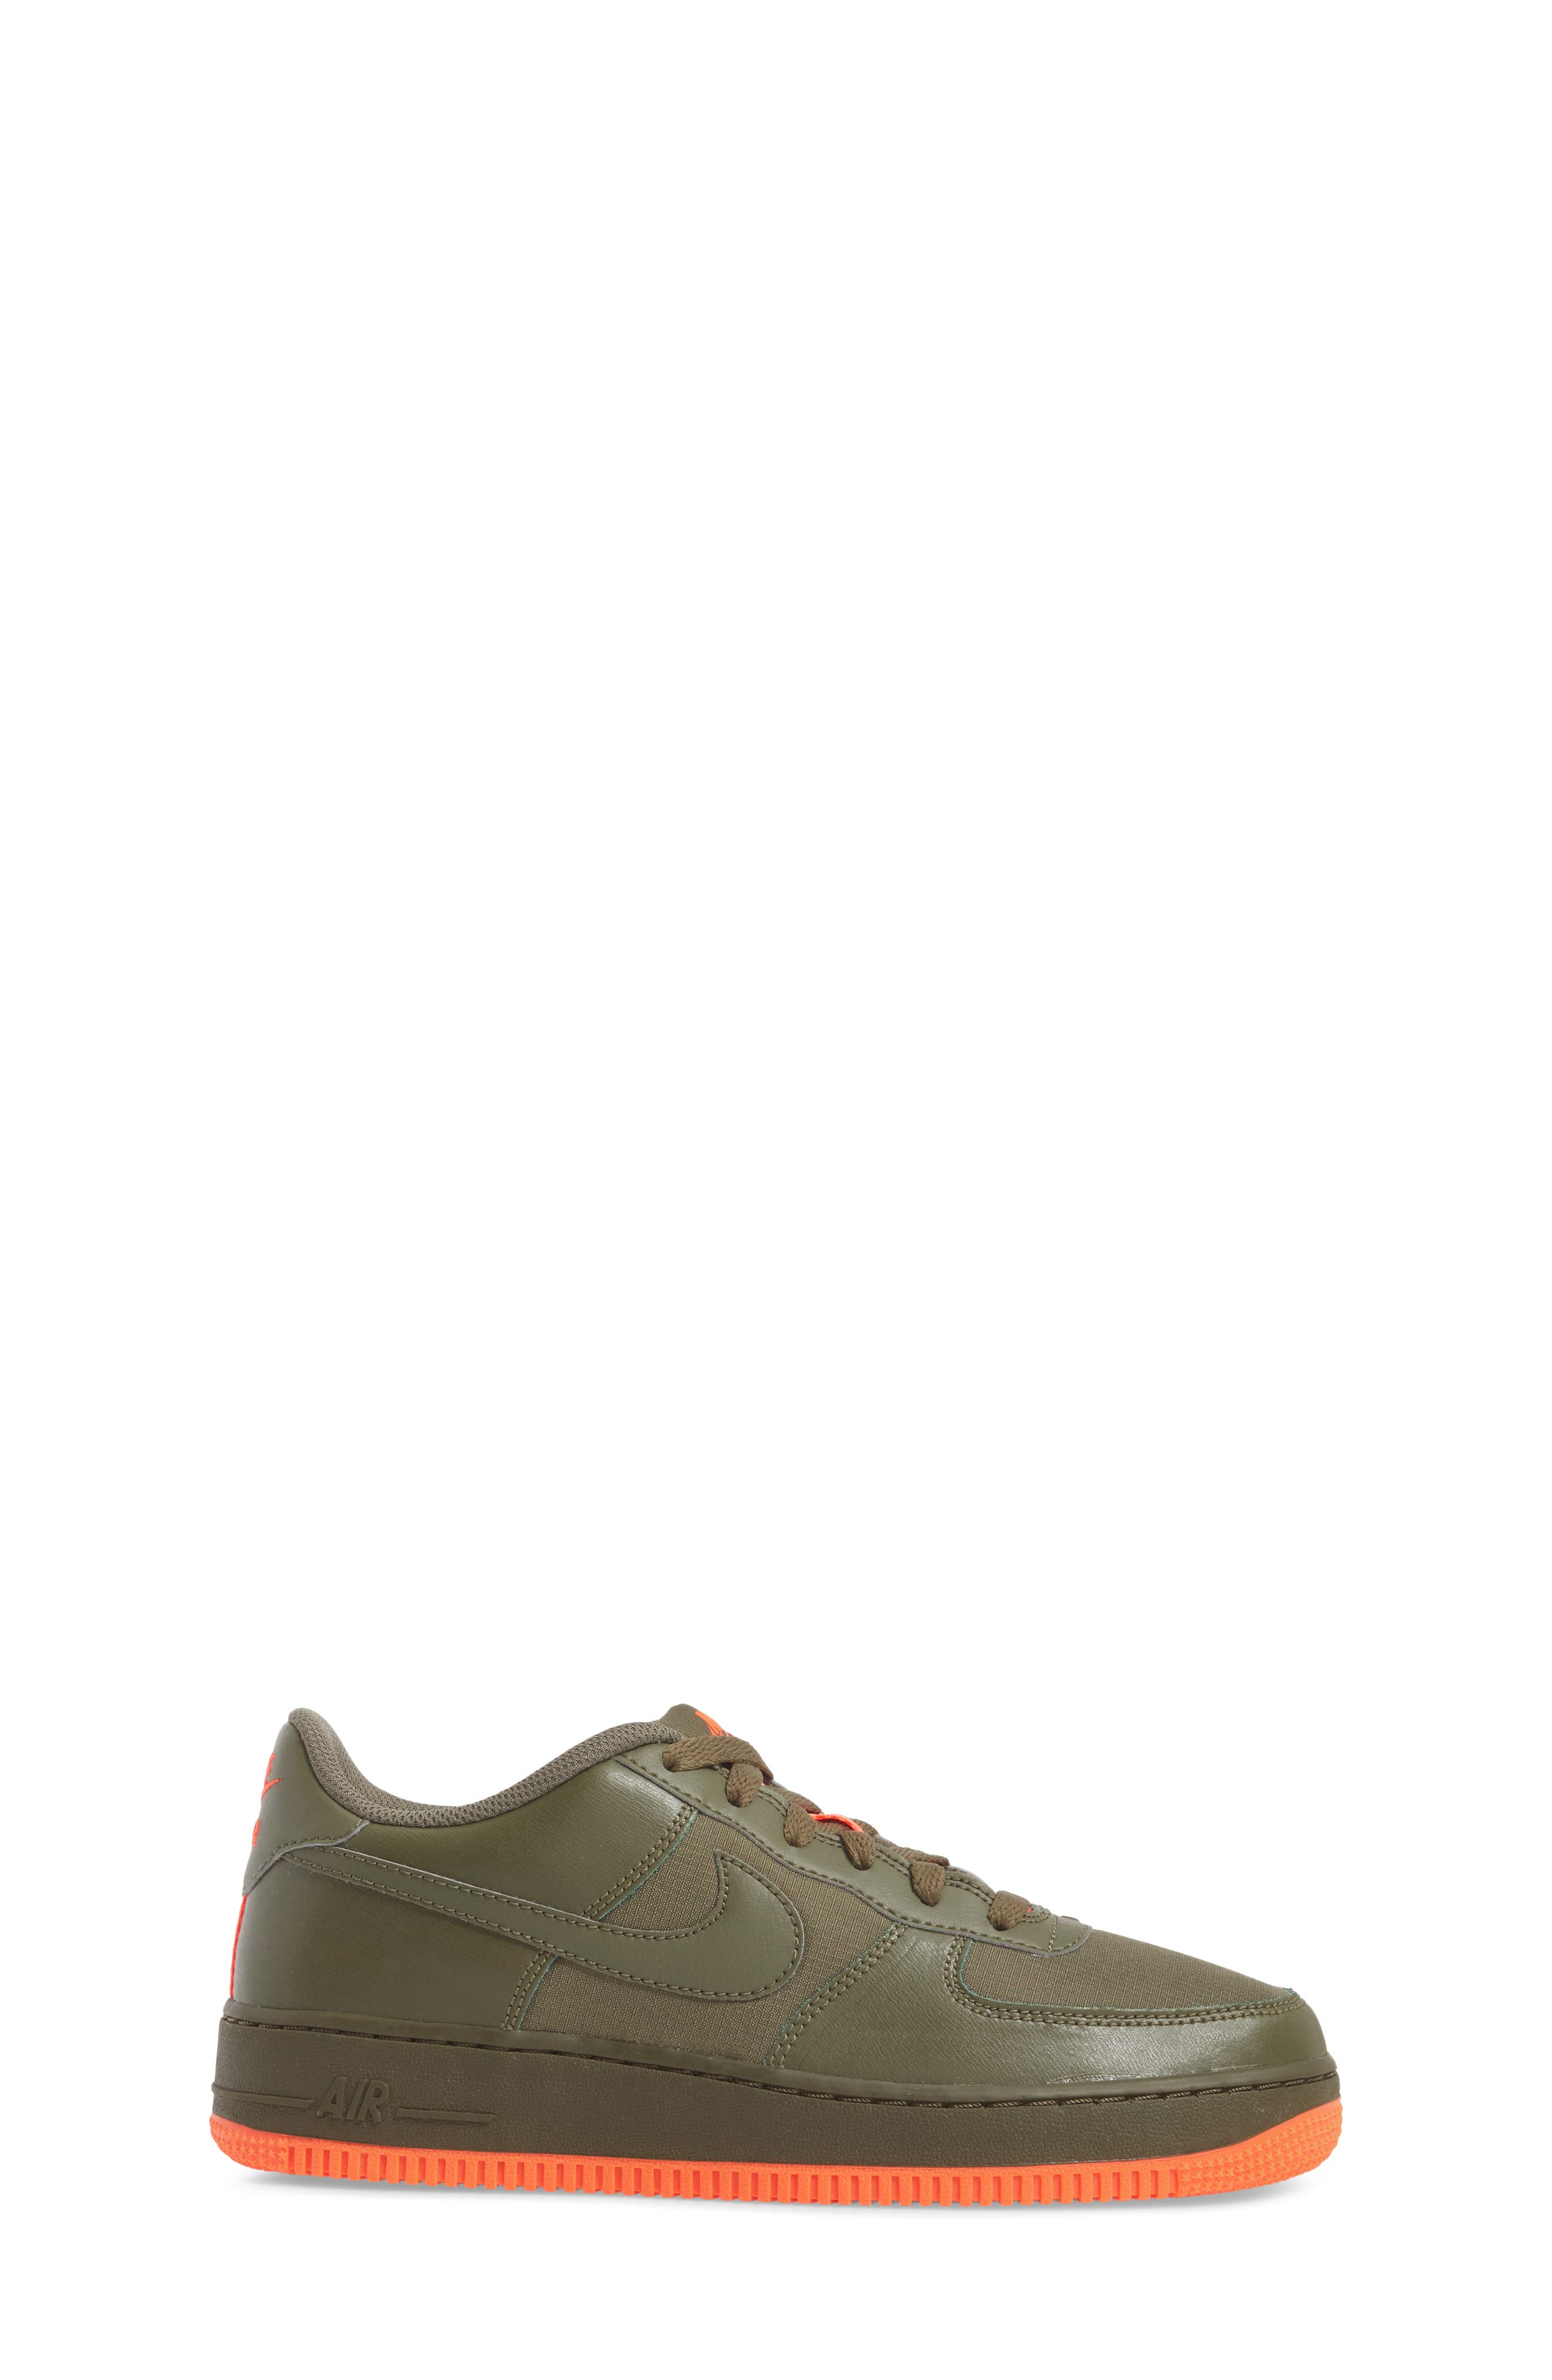 Air Force 1 LV8 Sneaker,                             Alternate thumbnail 3, color,                             MEDIUM OLIVE/ TOTAL CRIMSON